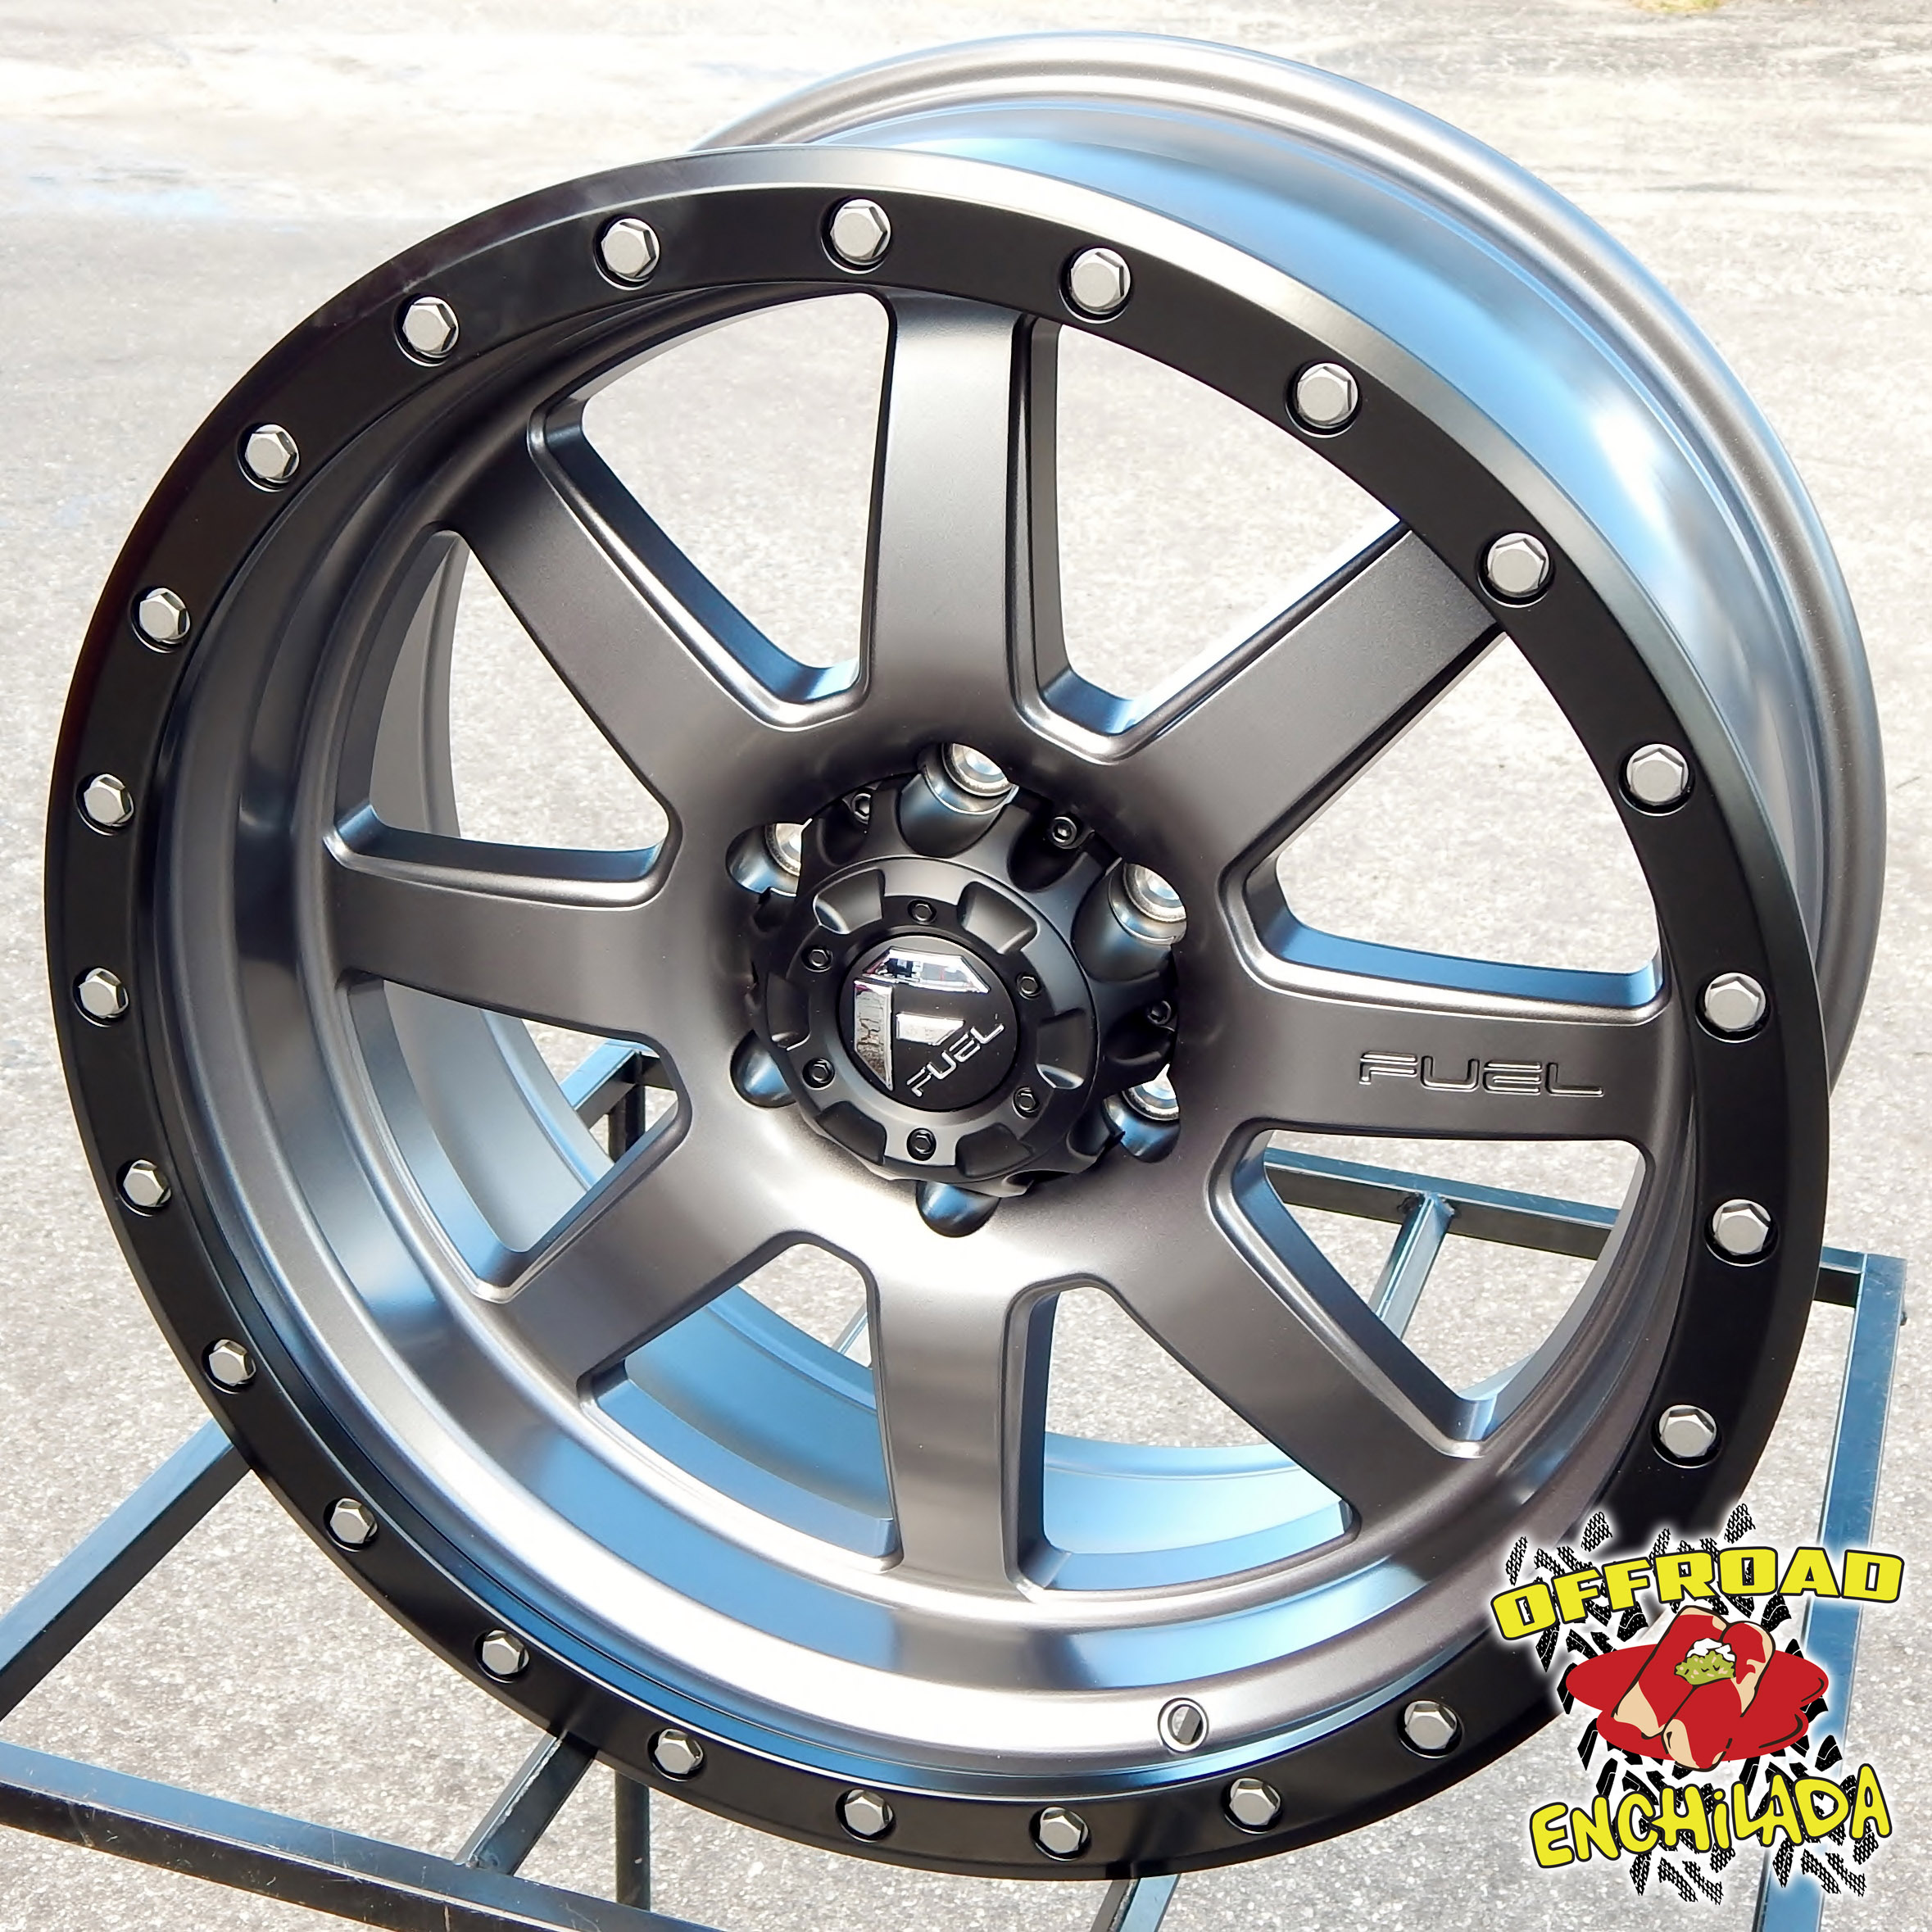 Fuel Trophy Wheels >> Details About 20x9 Gray Black Fuel Trophy Wheels Rims Ford F 150 Expedition Fx4 Xlt 6x135